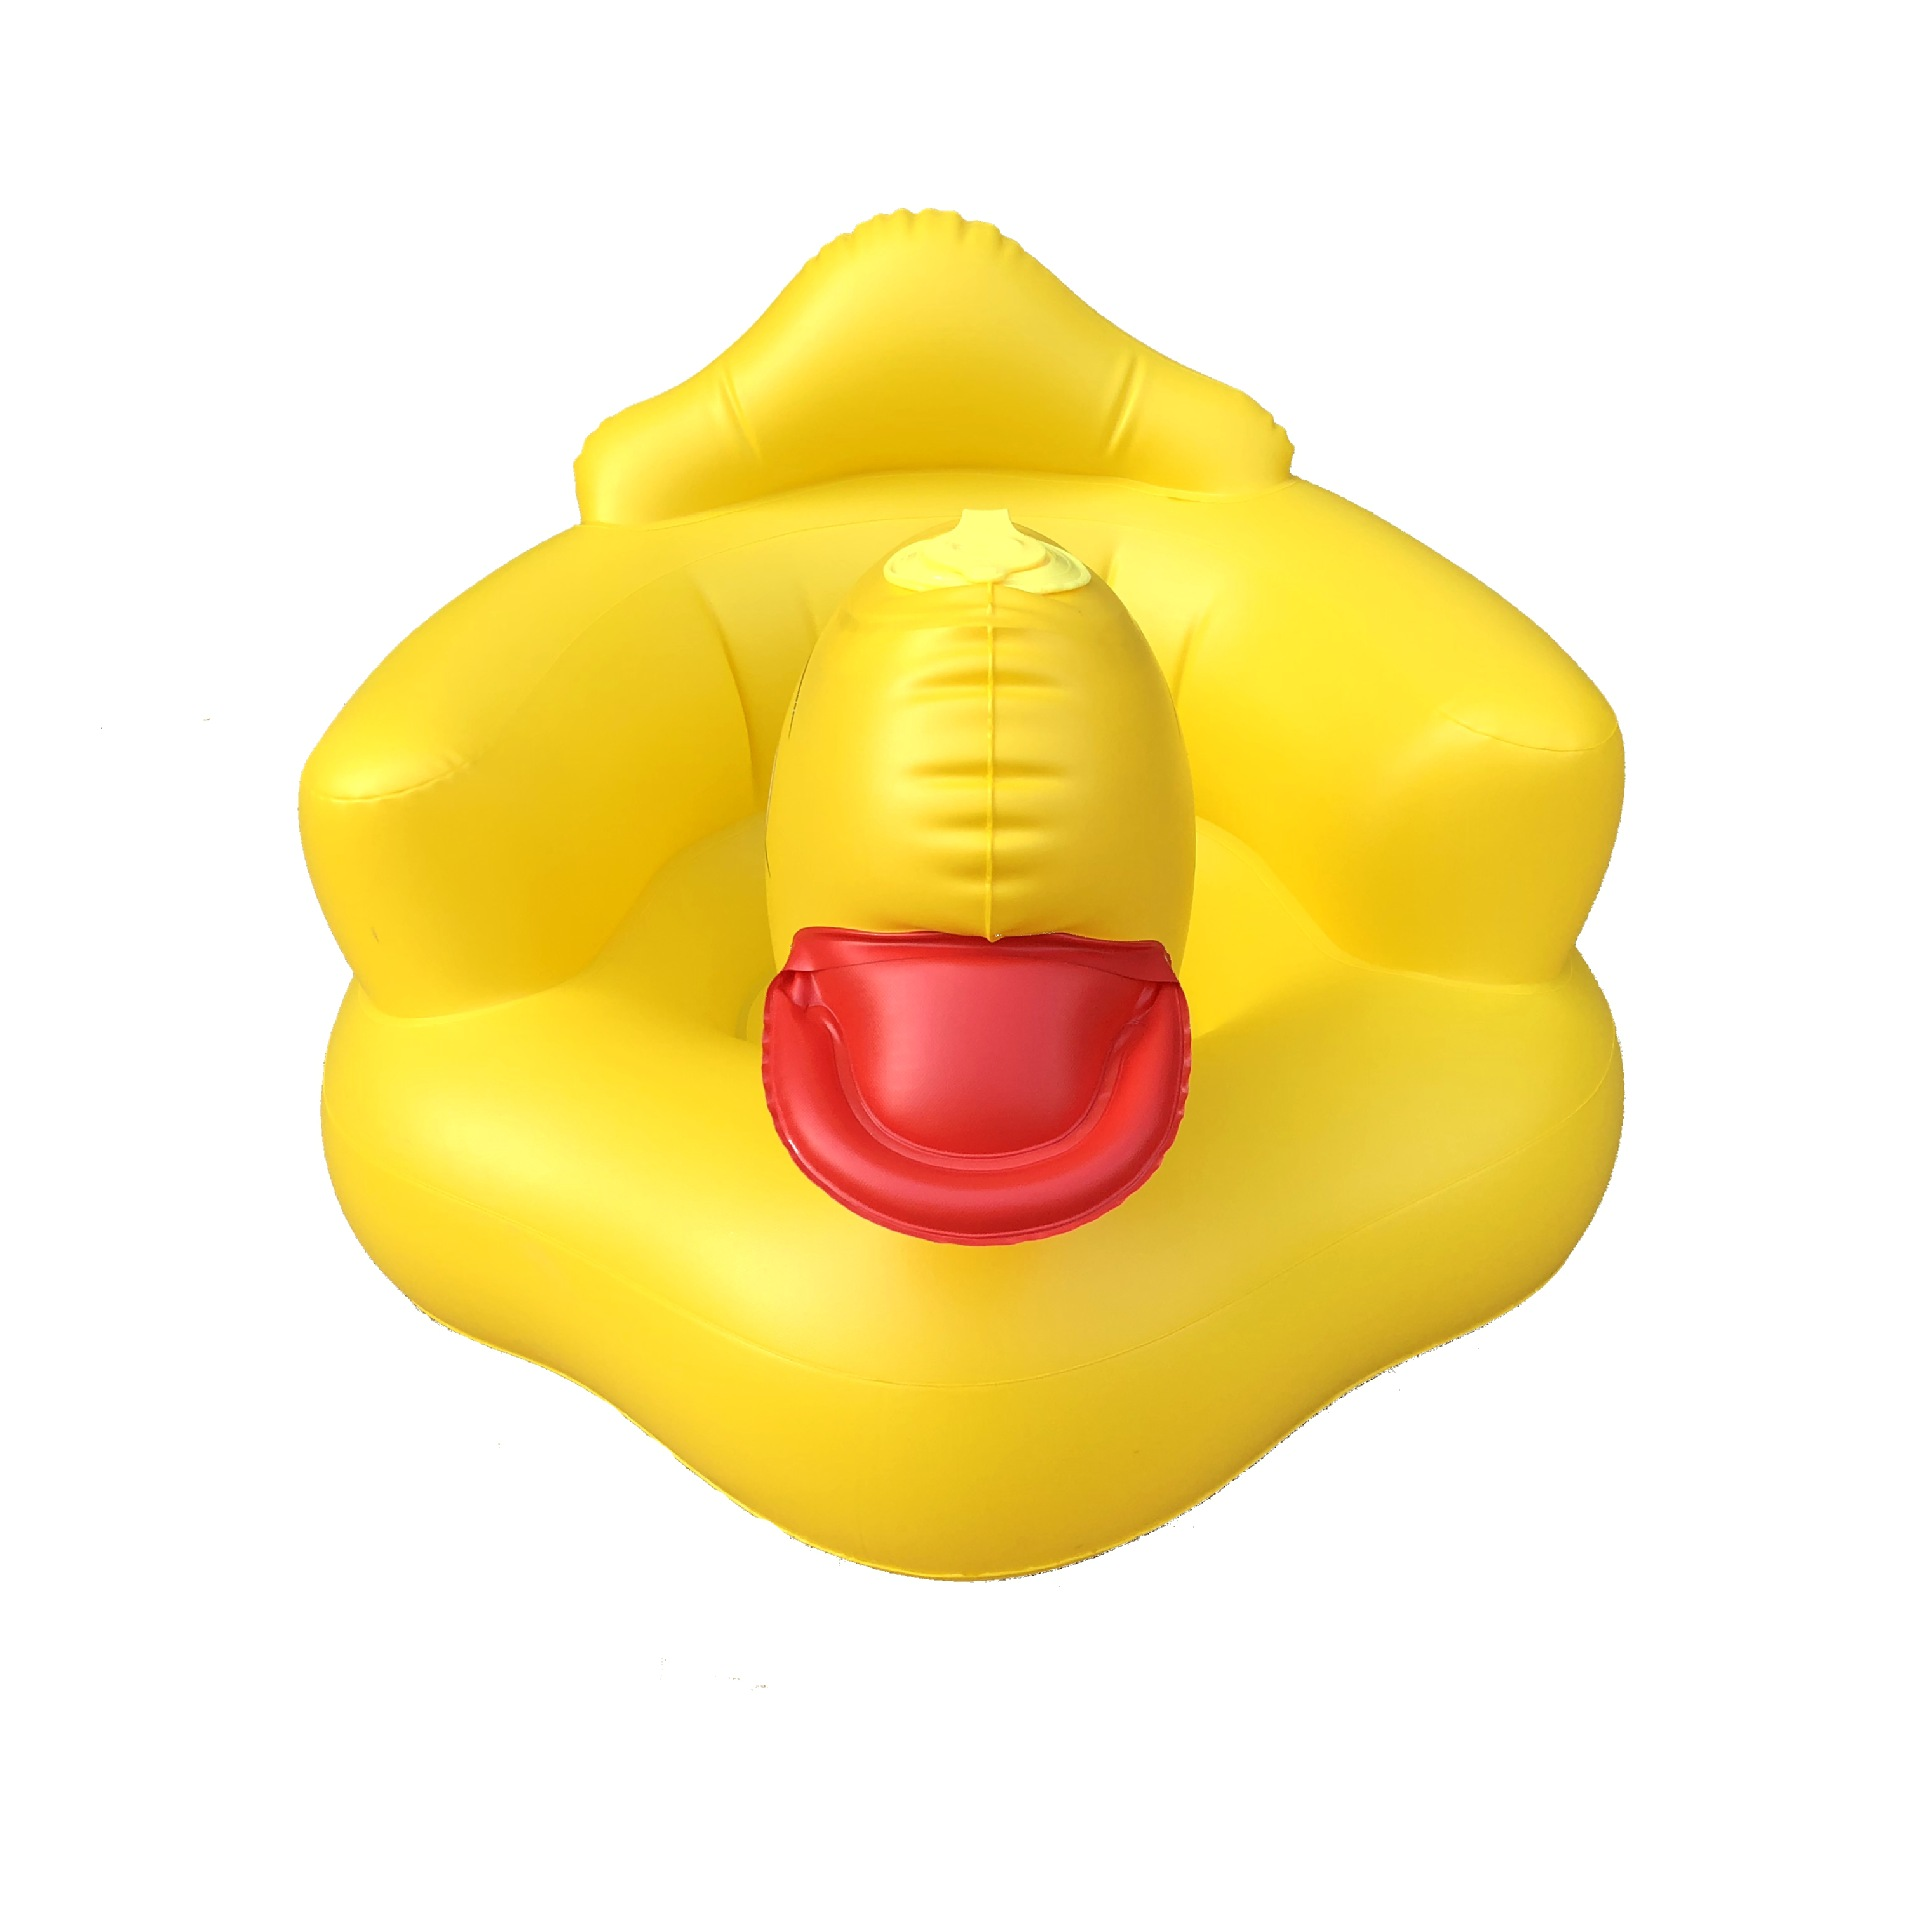 whholesale self inflating  kids bath stool  yellow duck inflatable baby sofa for bathroom